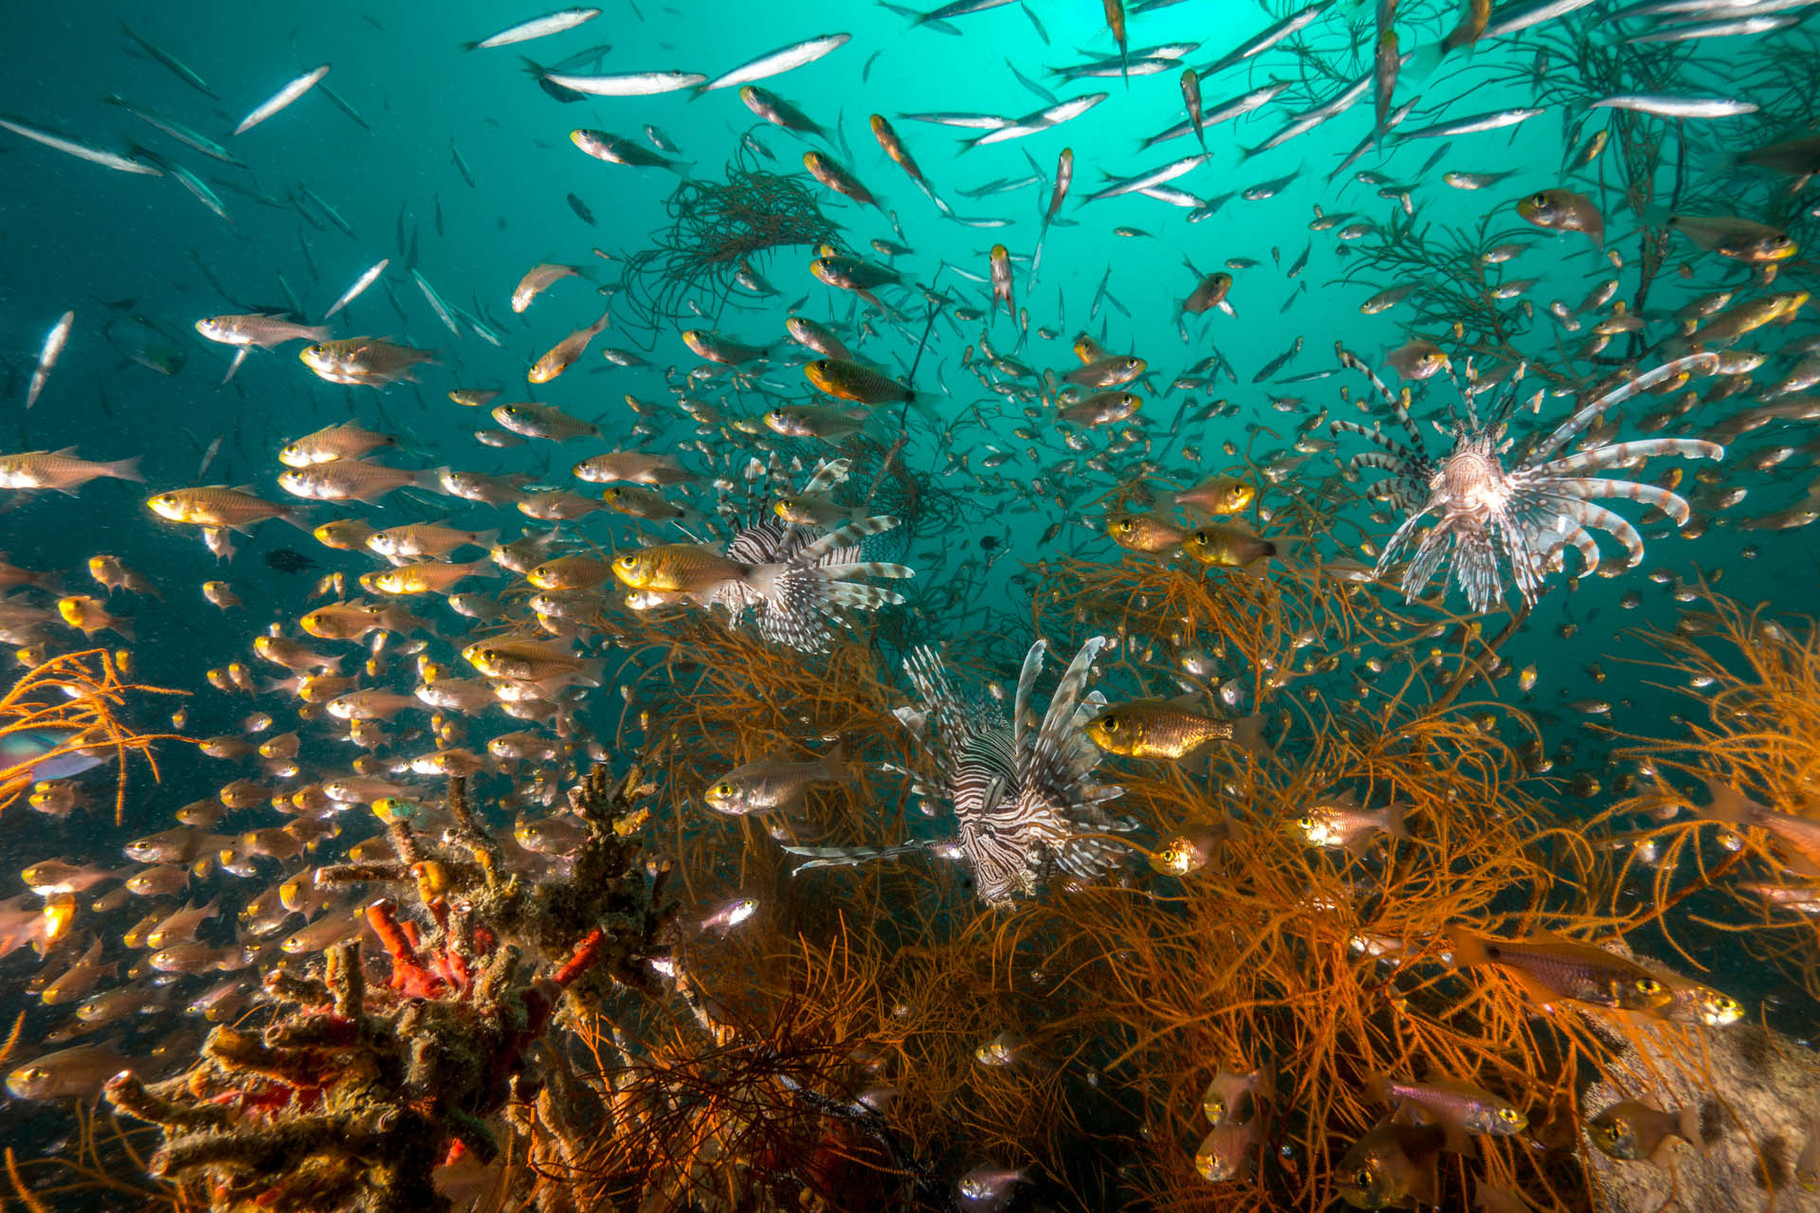 Three hunting lionfishes, schools of glas fishes and juvenile Baracudas at Kyogo Maru Wreck, Coron